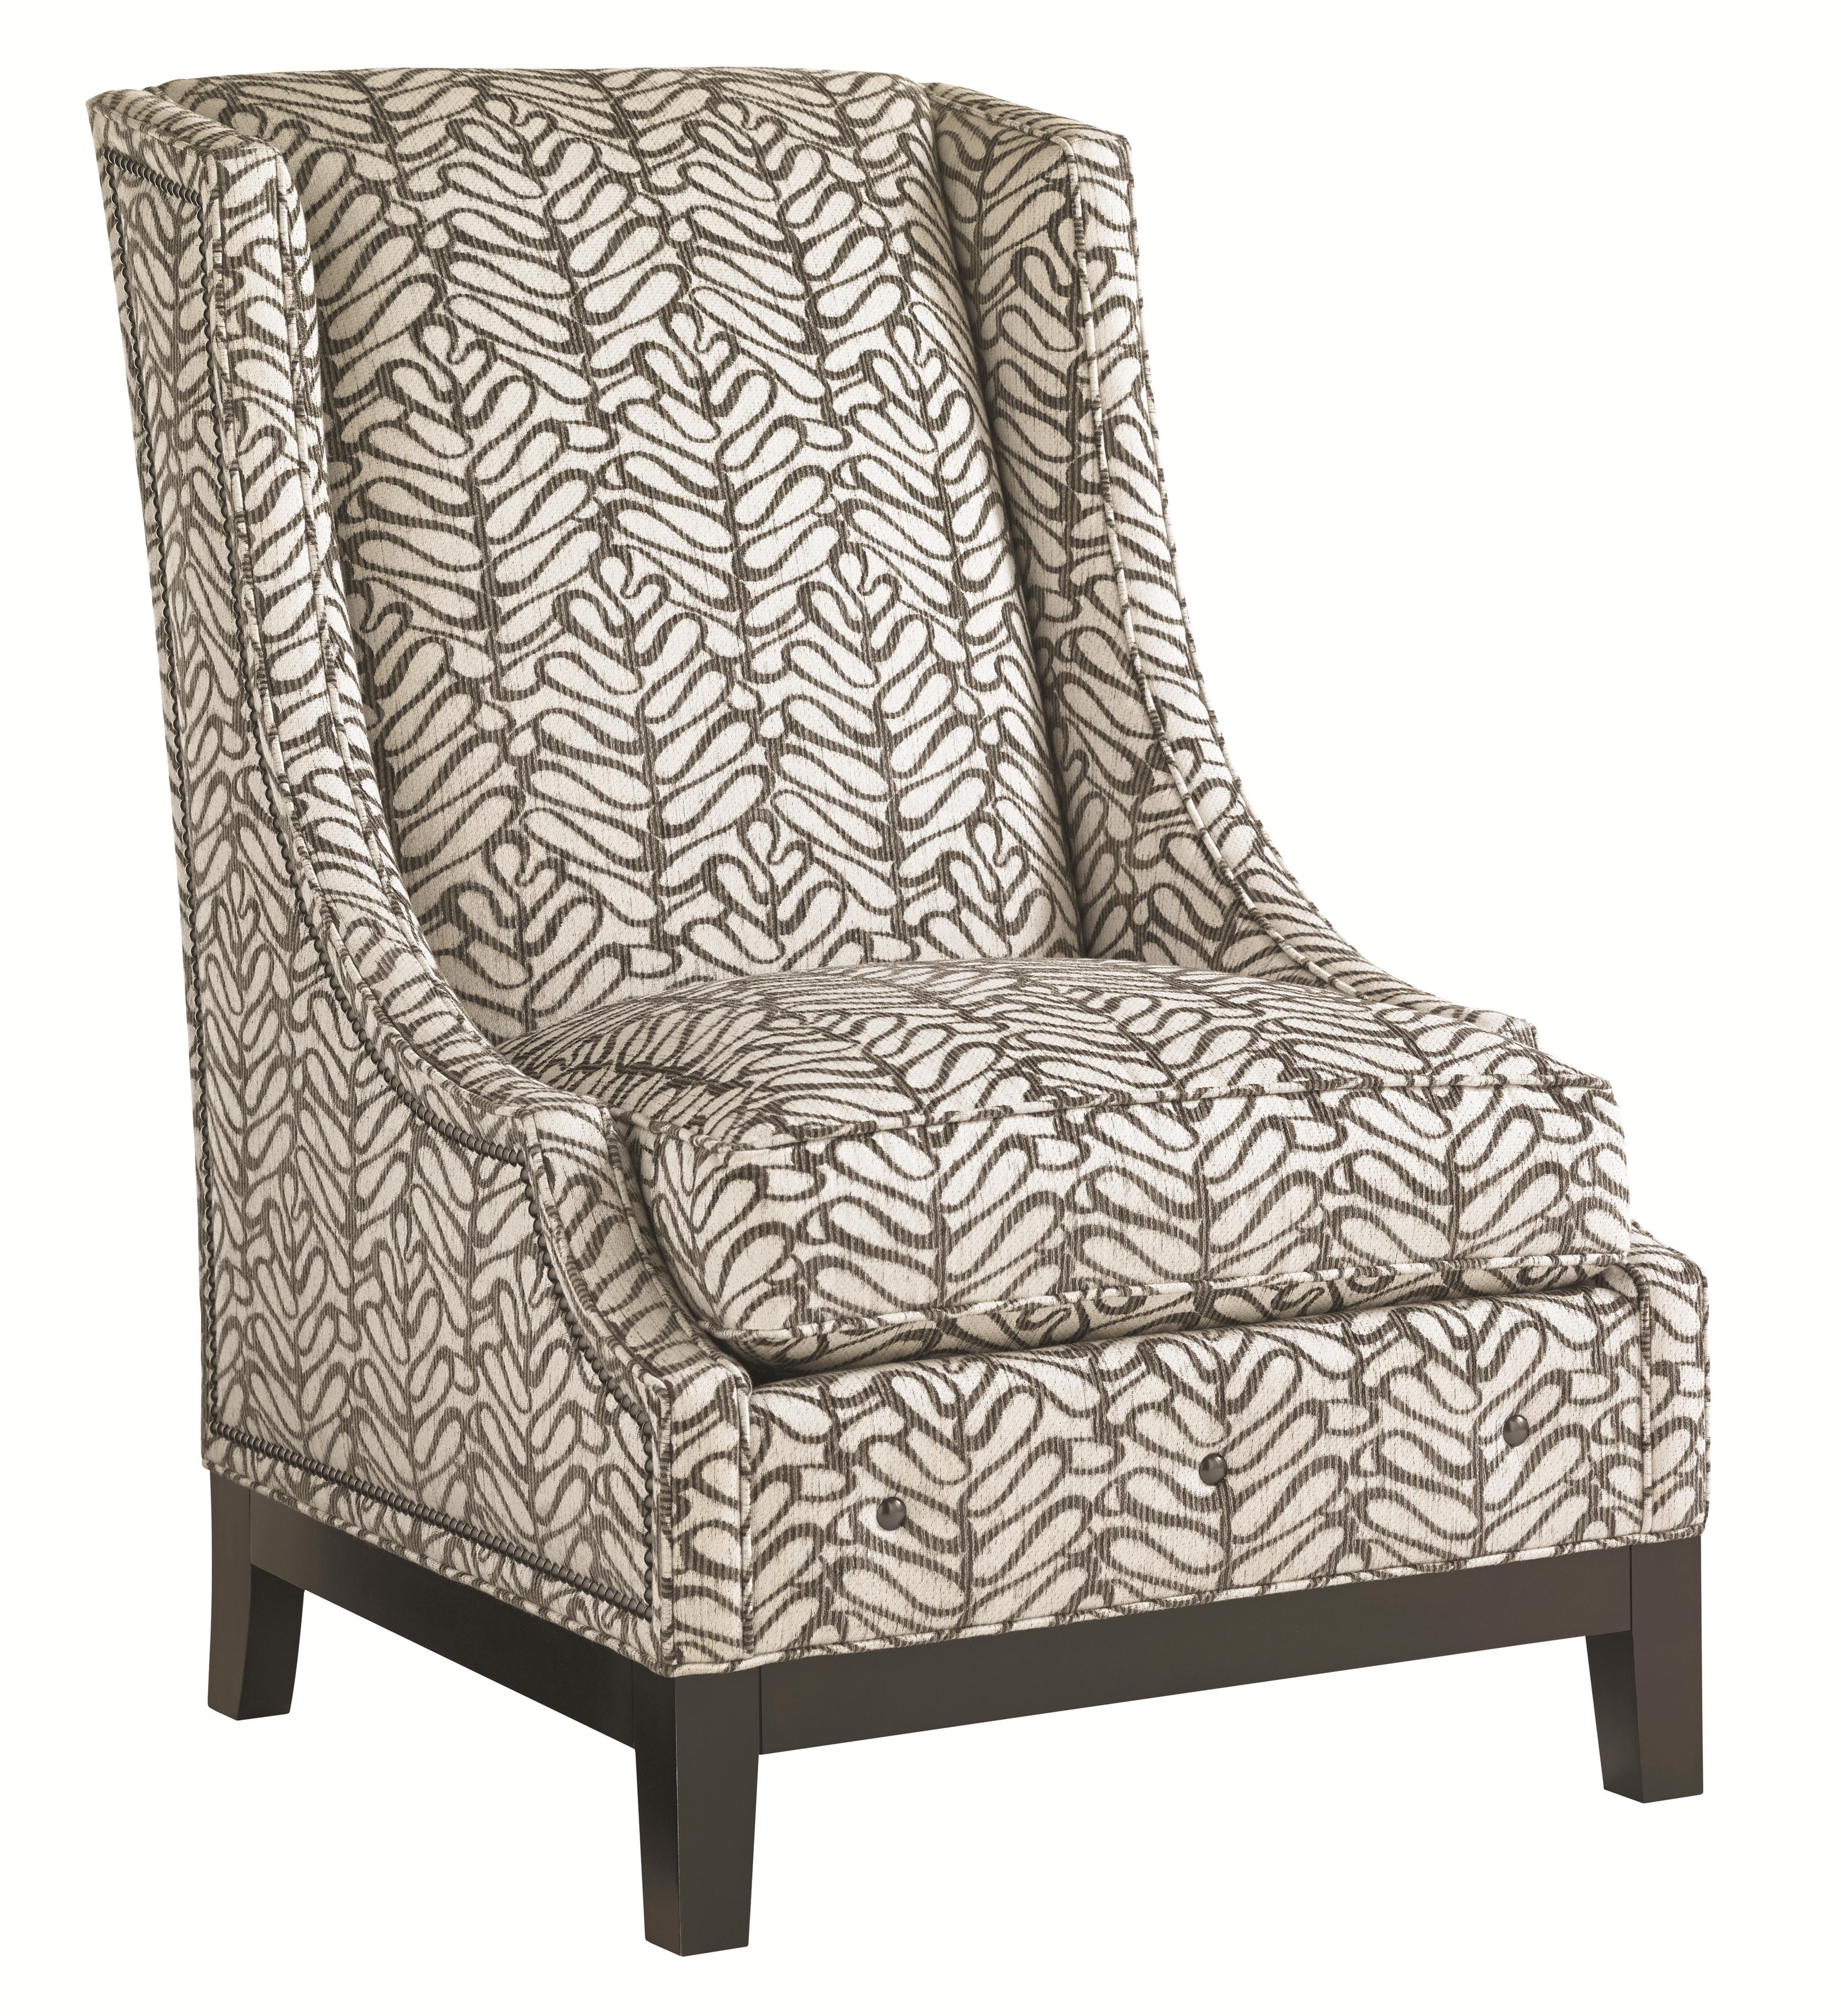 Mirage Ava Wing Chair by Lexington at Baer's Furniture